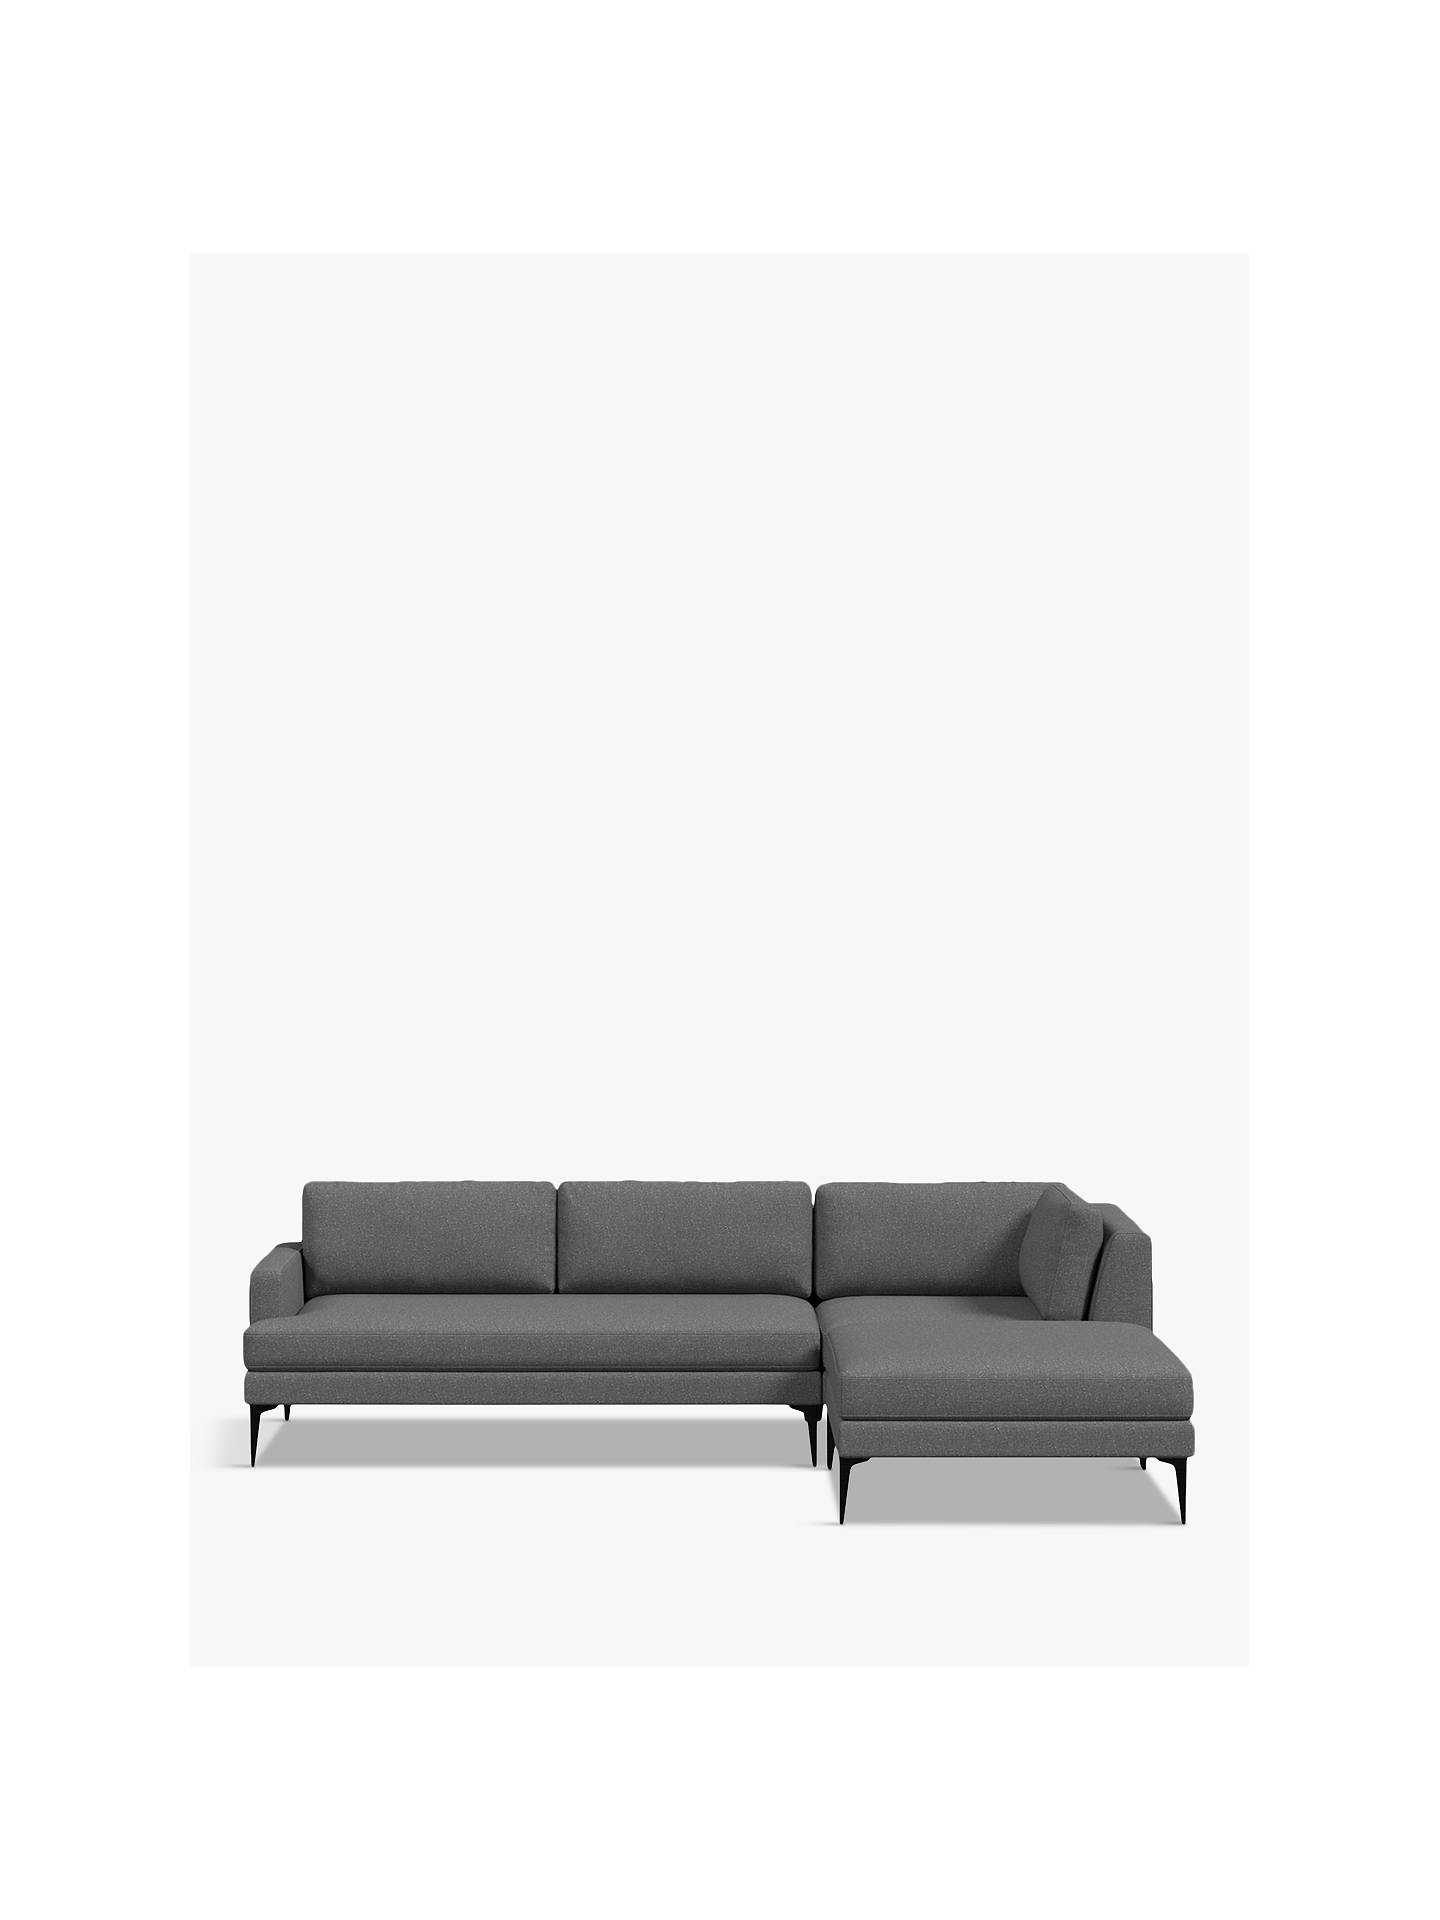 Phenomenal West Elm Andes Large 3 Seater Rhf Sectional Sofa Salt And Alphanode Cool Chair Designs And Ideas Alphanodeonline